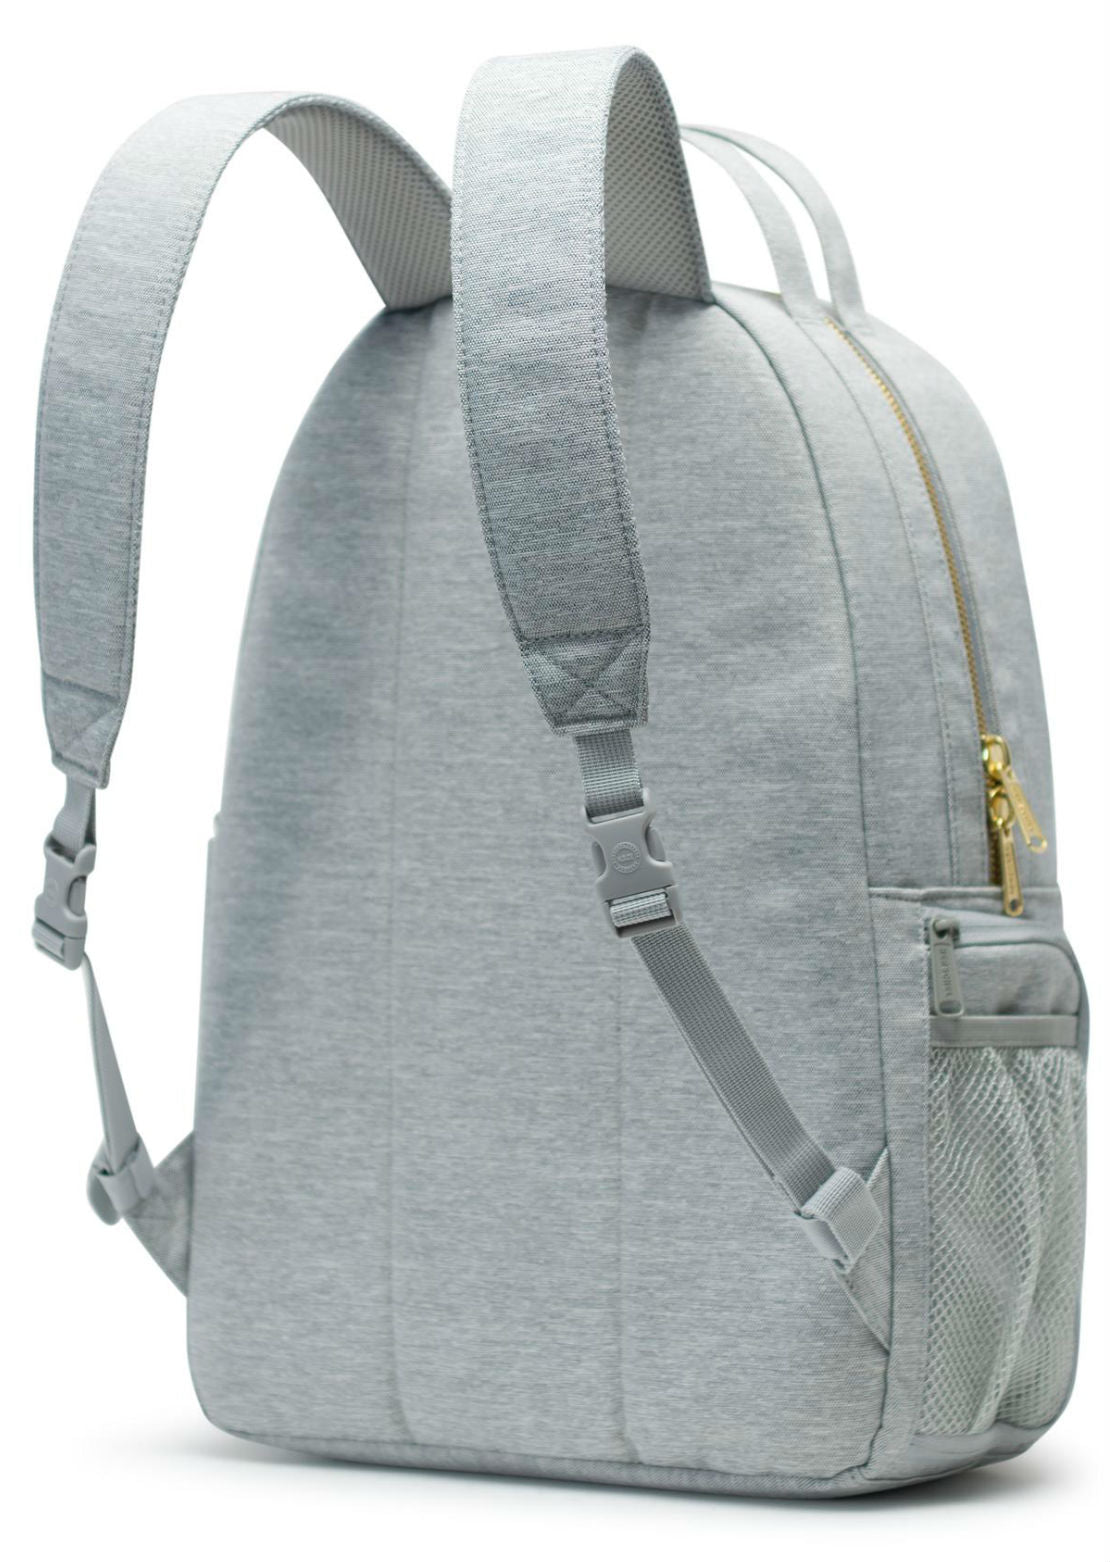 Herschel Nova Sprout Diaper Bag Backpack